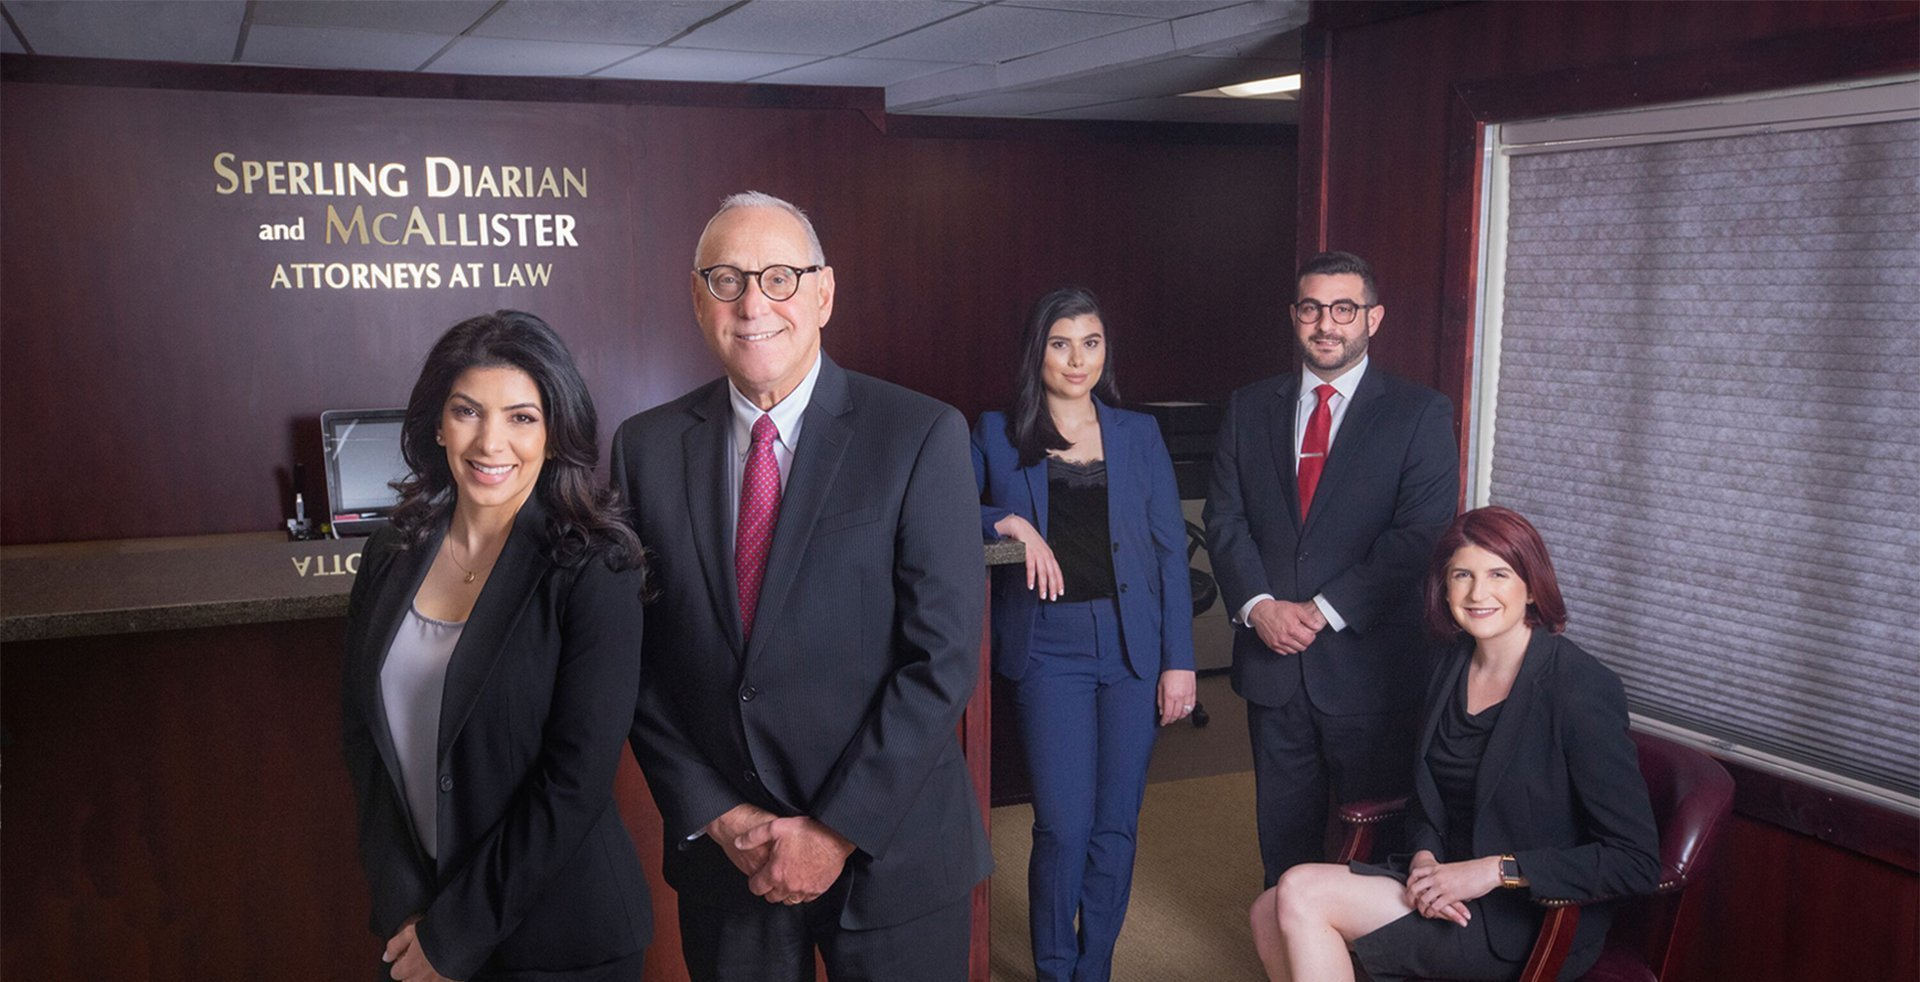 sperling law firm attorney group photo